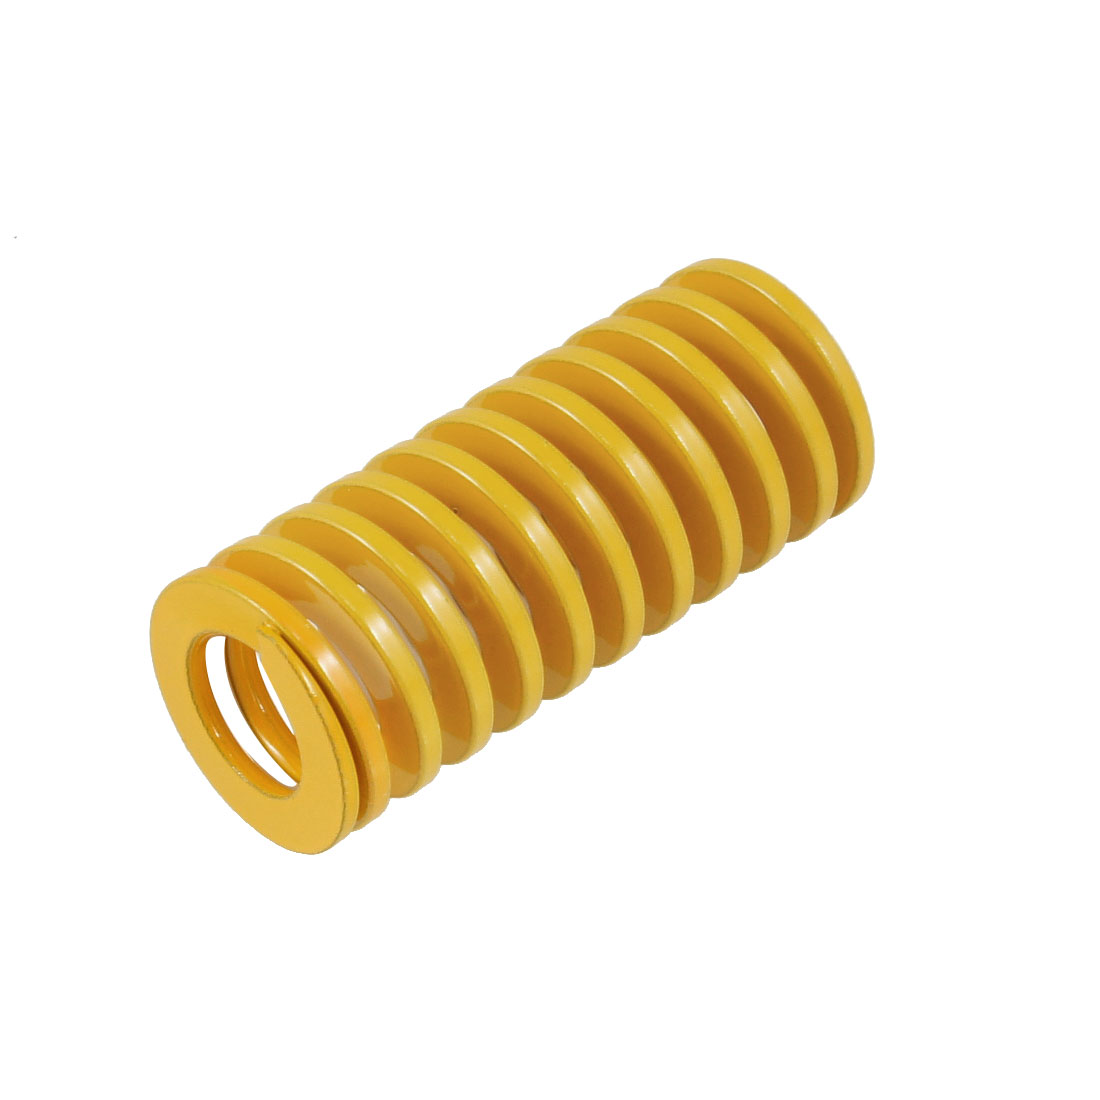 Orange 30mm x 17mm x 70mm Metal Tubular Section Mould Die Spring